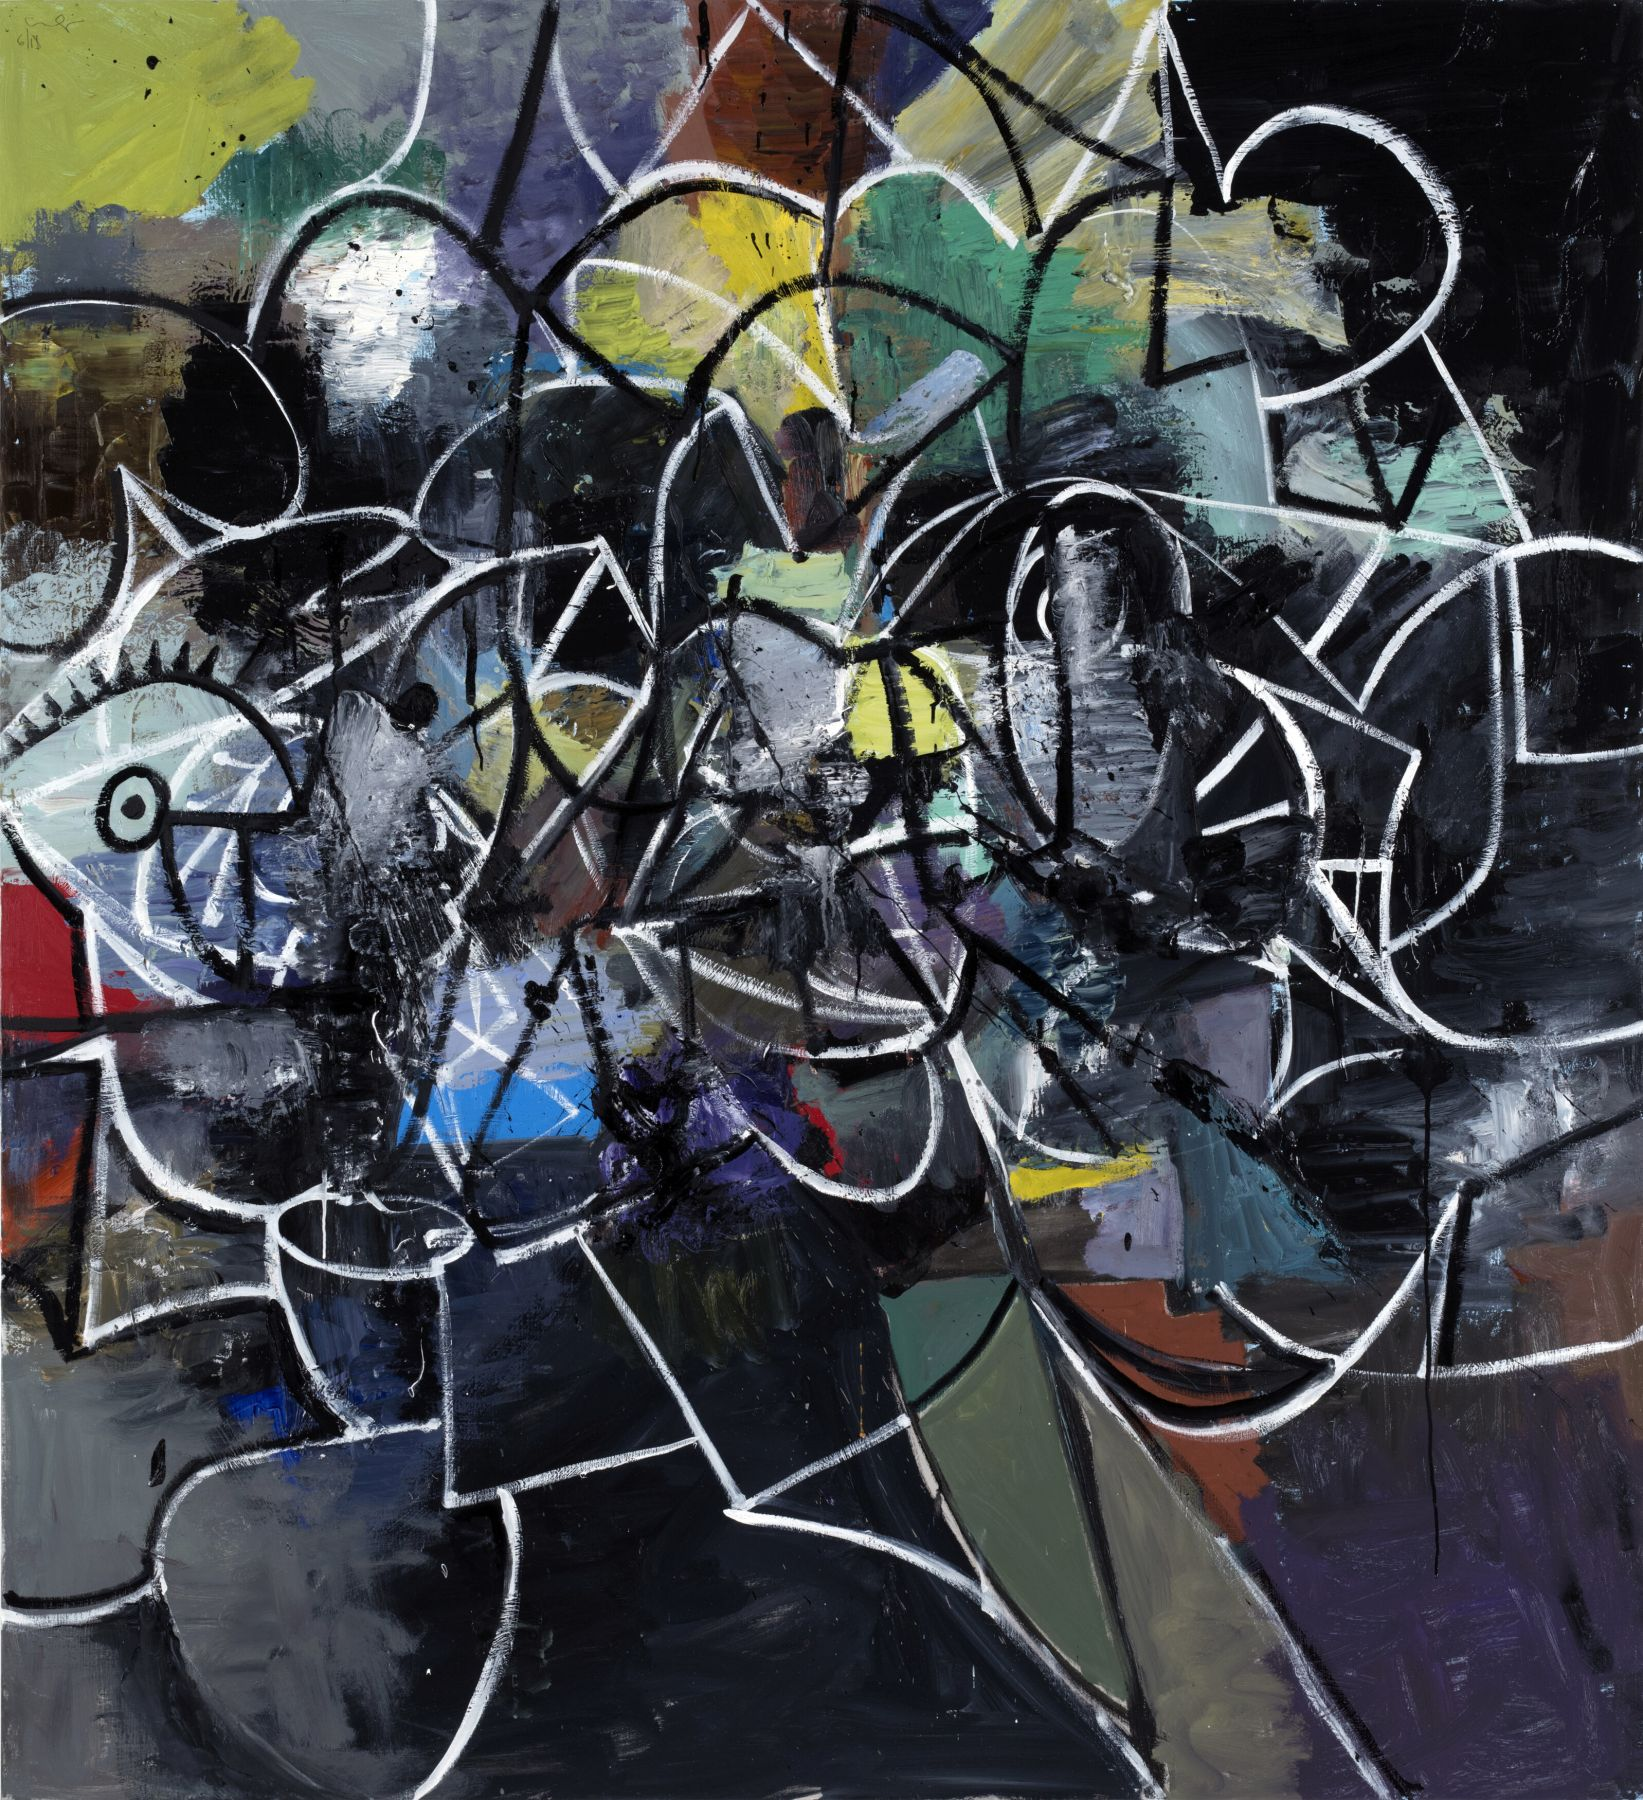 George Condo Abstract with Black and White Lines, 2018